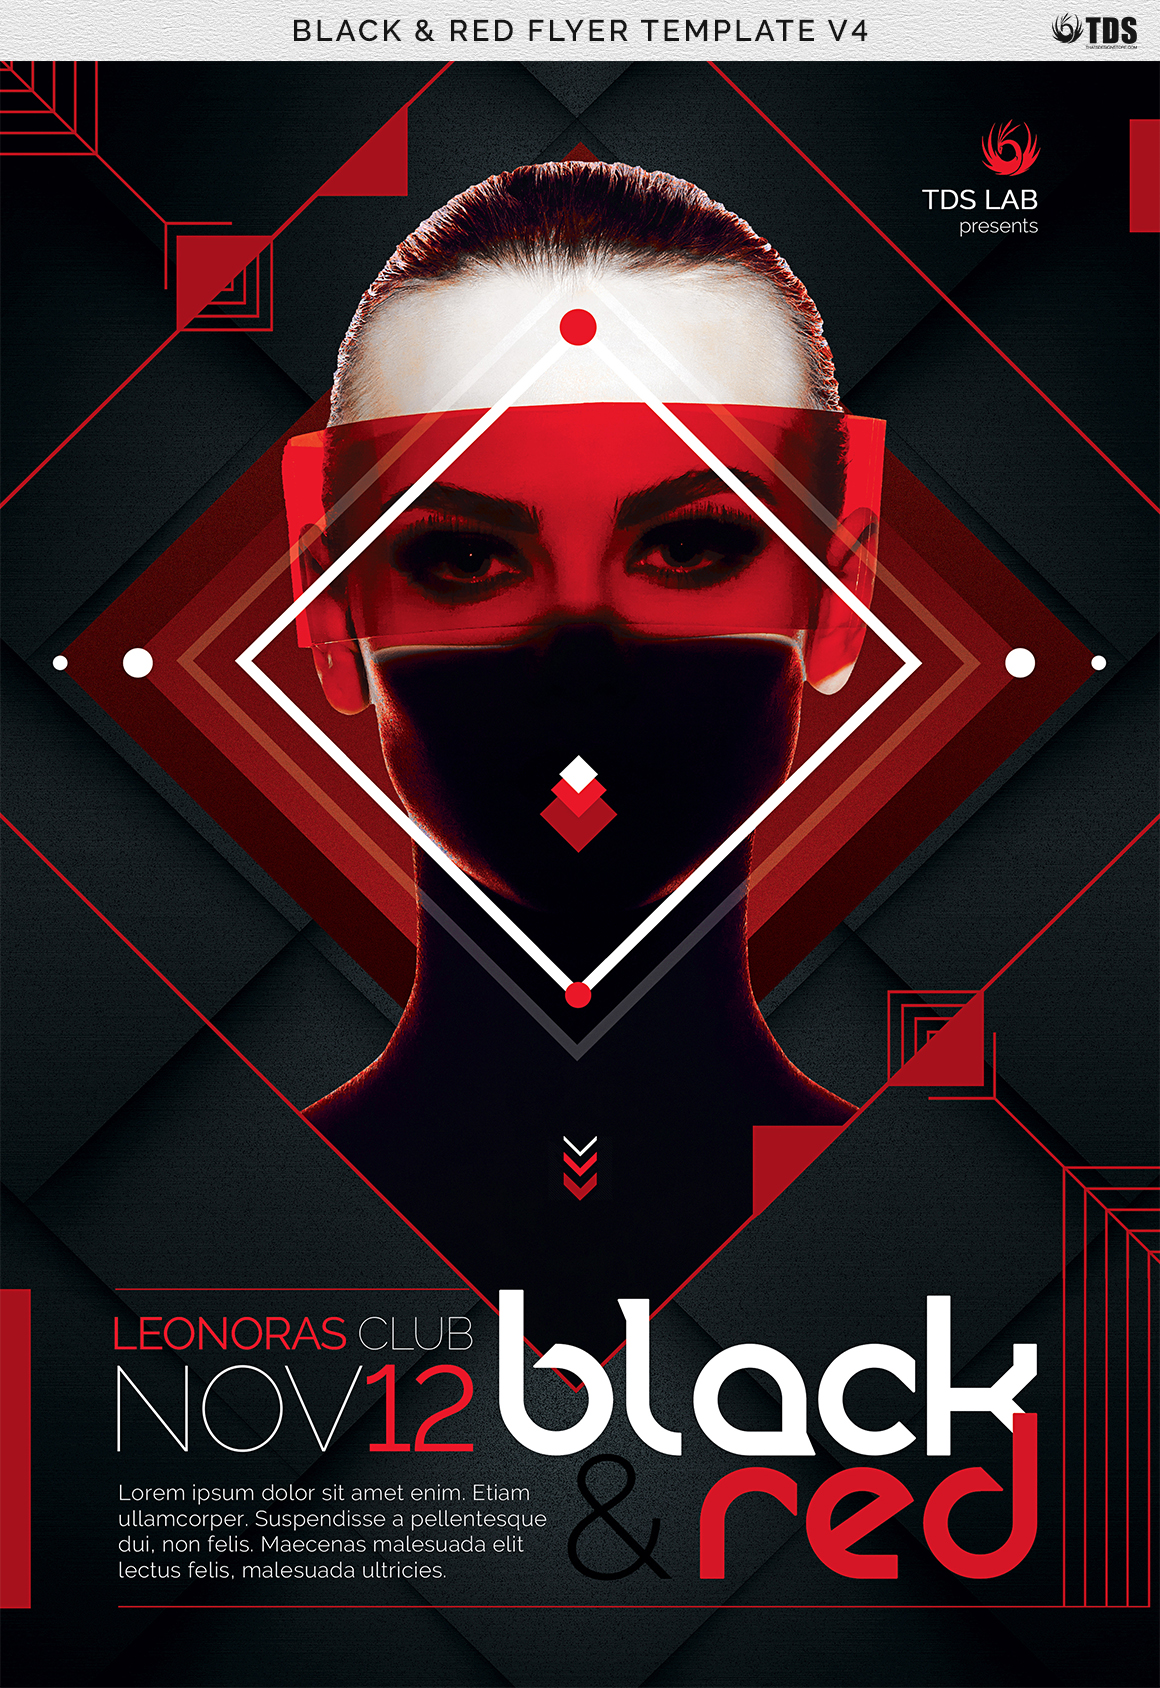 Black and Red Flyer Template V4 example image 7